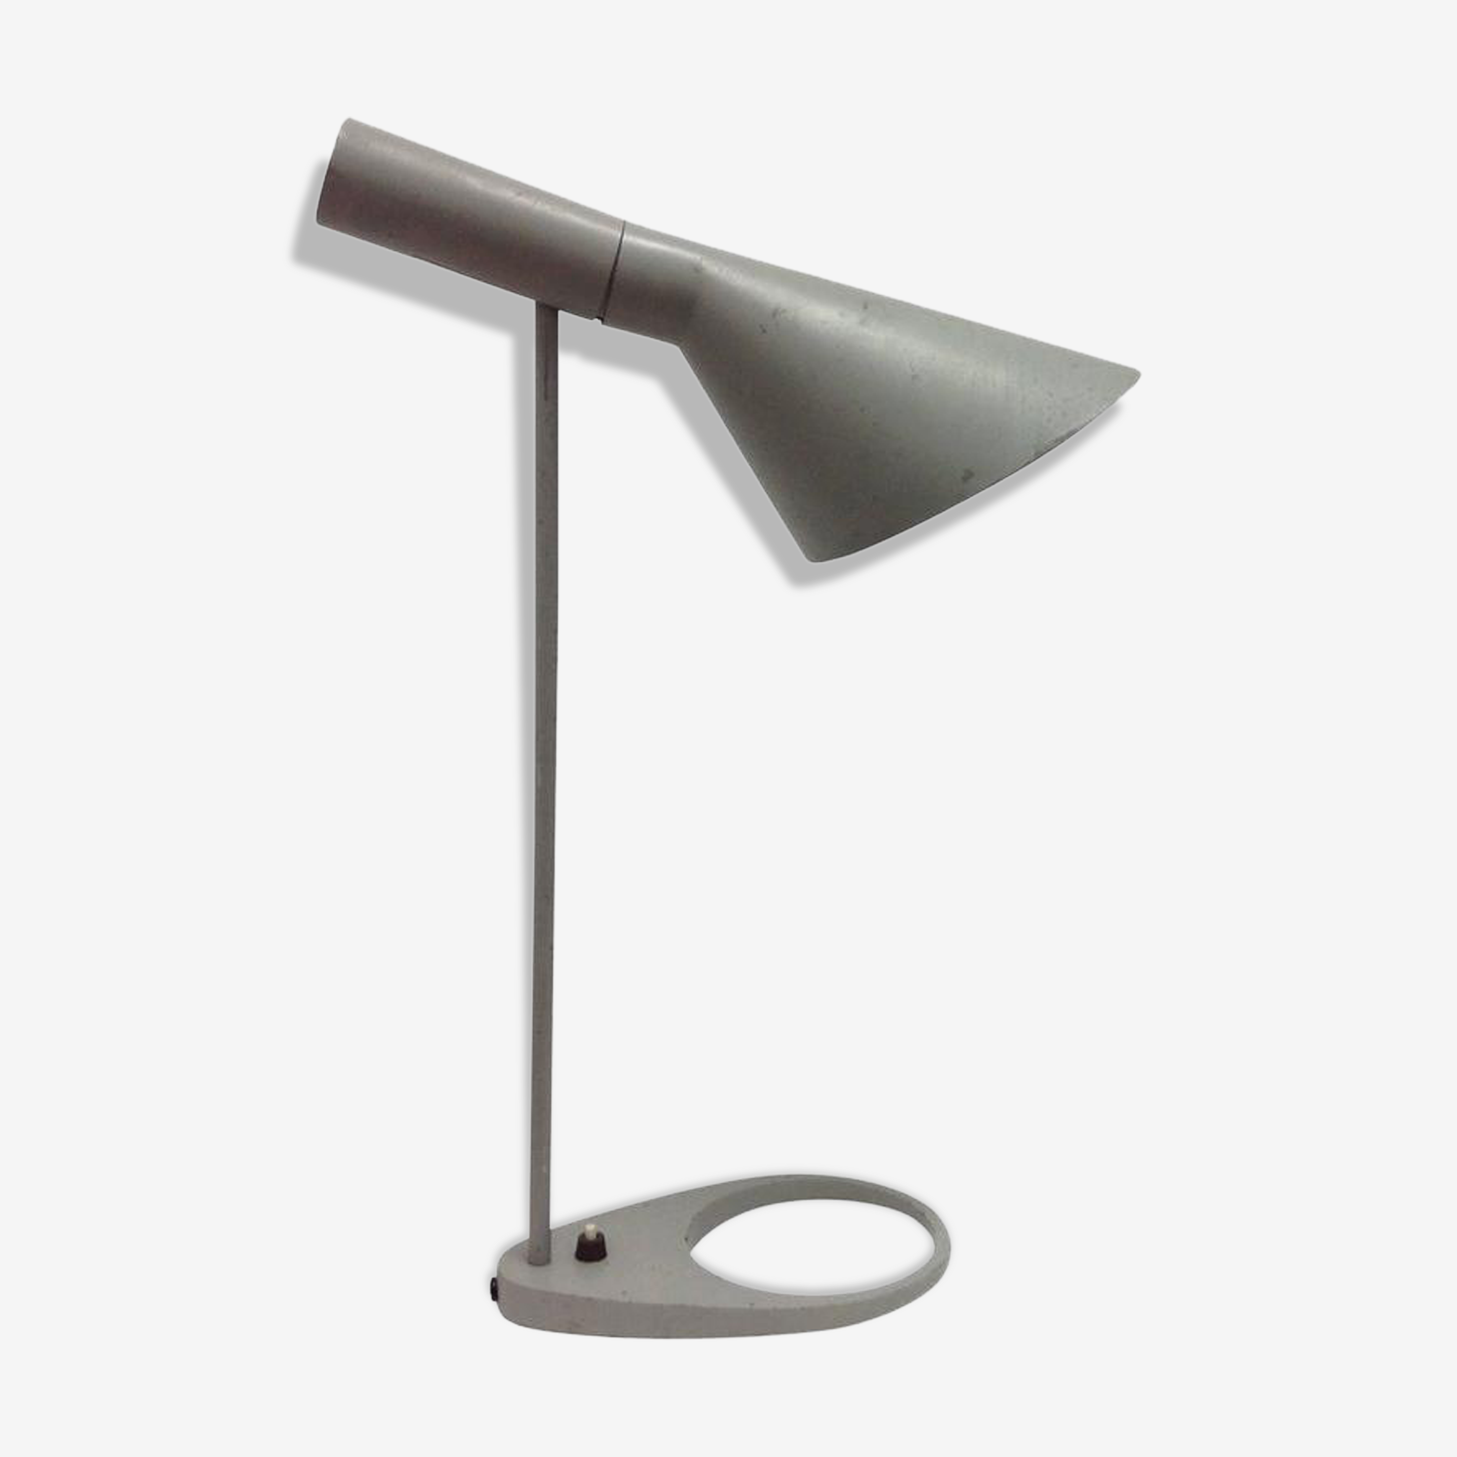 Lampe de table Arne Jacobsen Visor